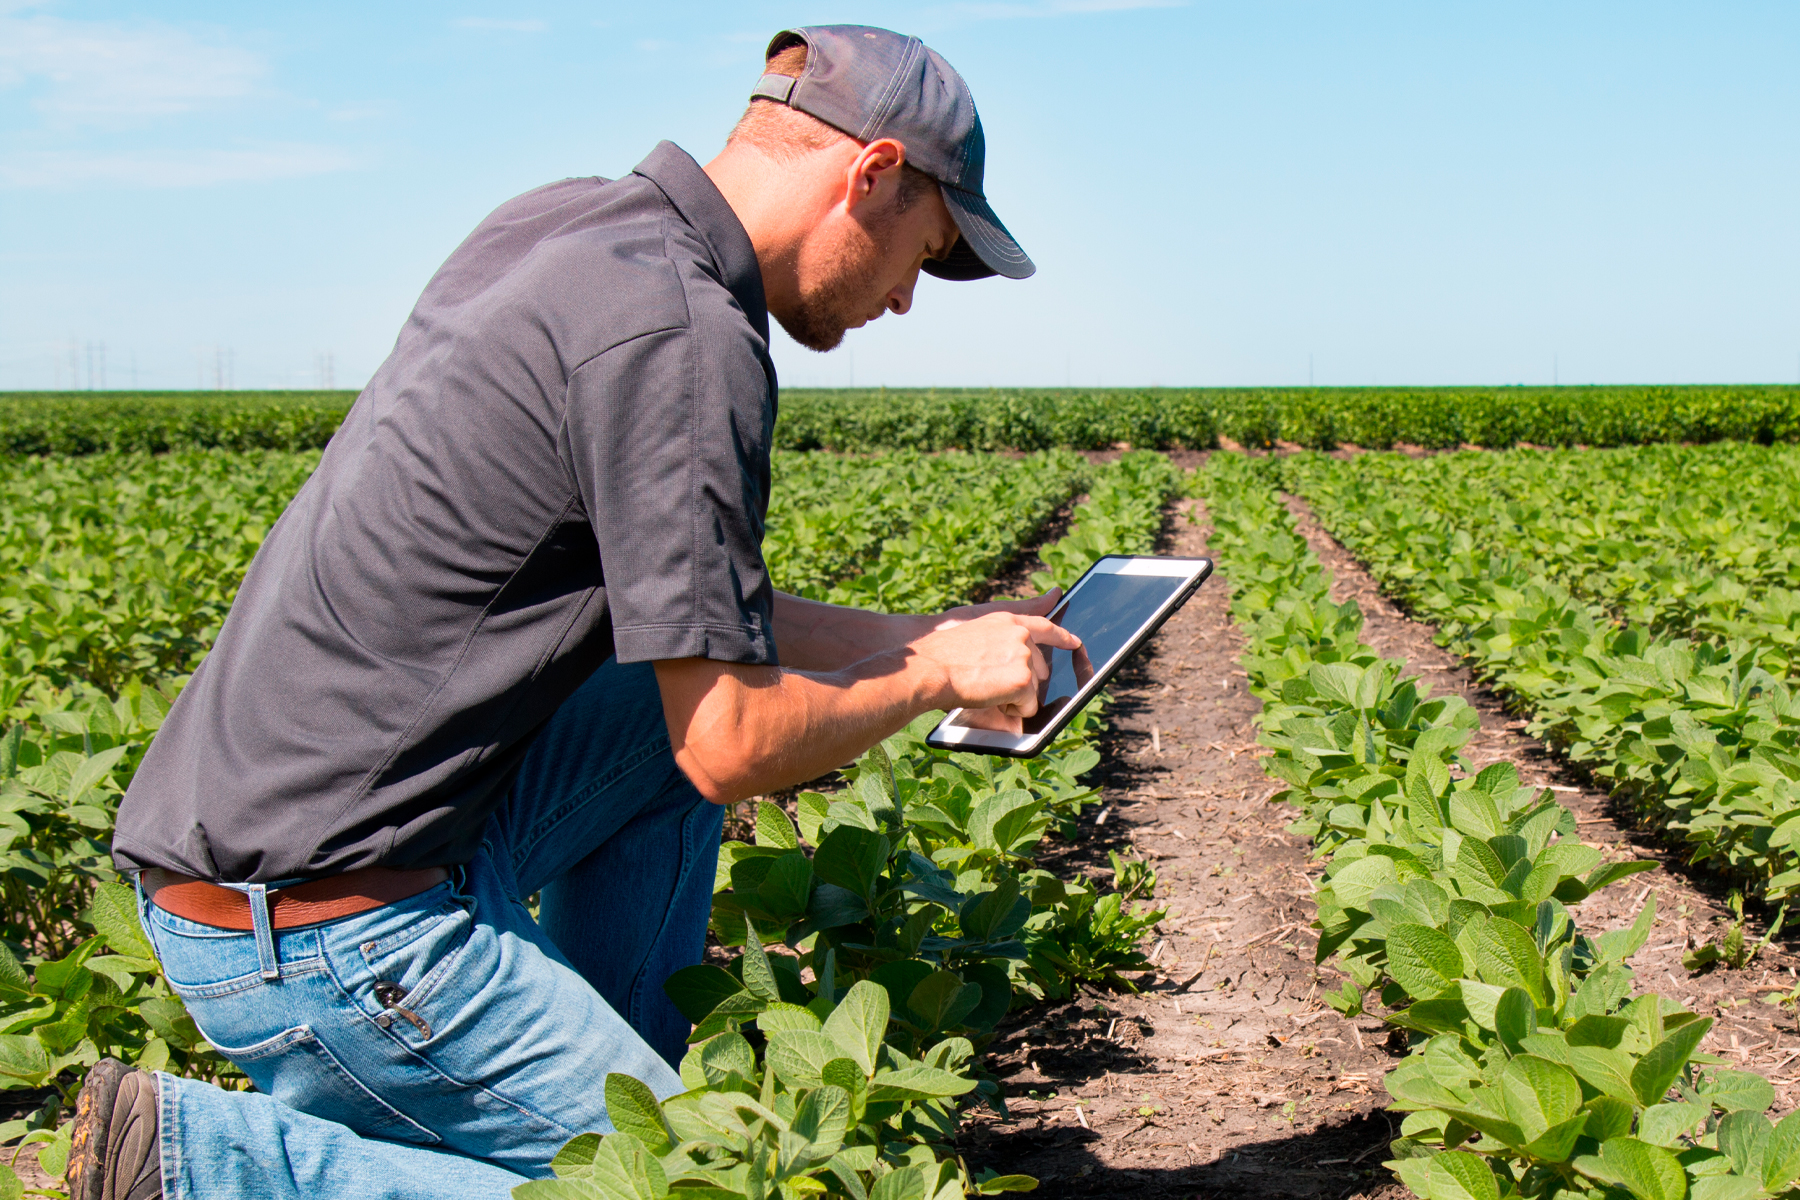 a field worker uses a tablet and monitors a field of crops